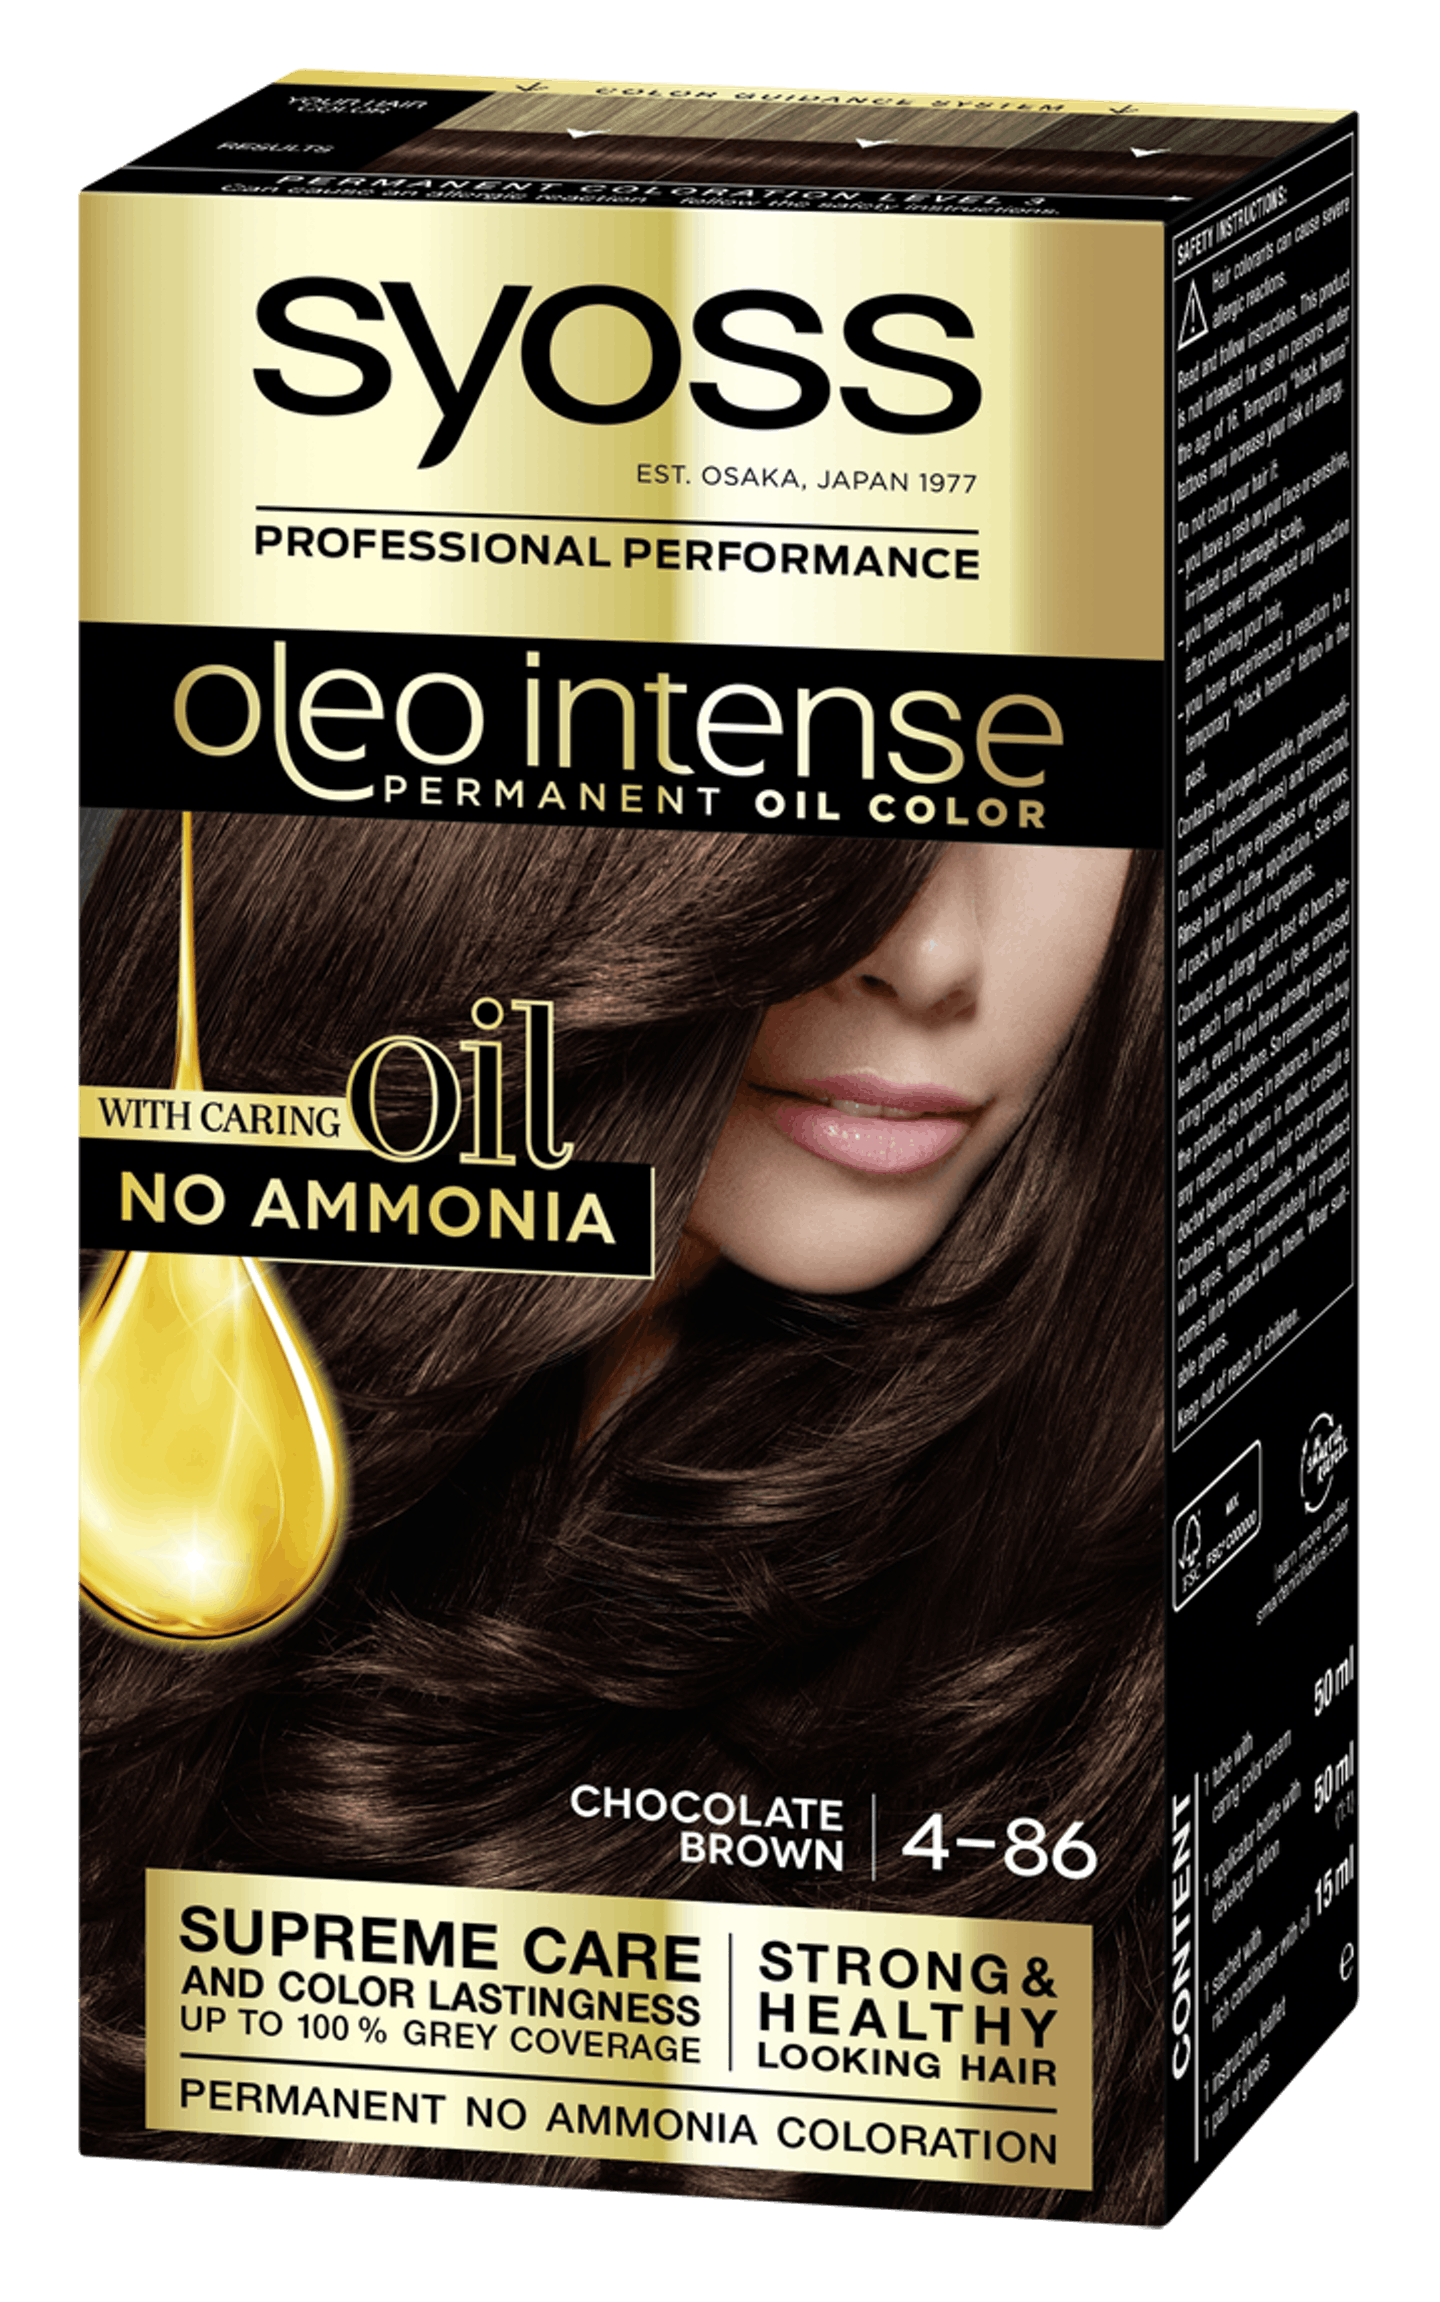 Syoss Oleo Intense Permanent Oil Color 4-86 Chocolate Brown